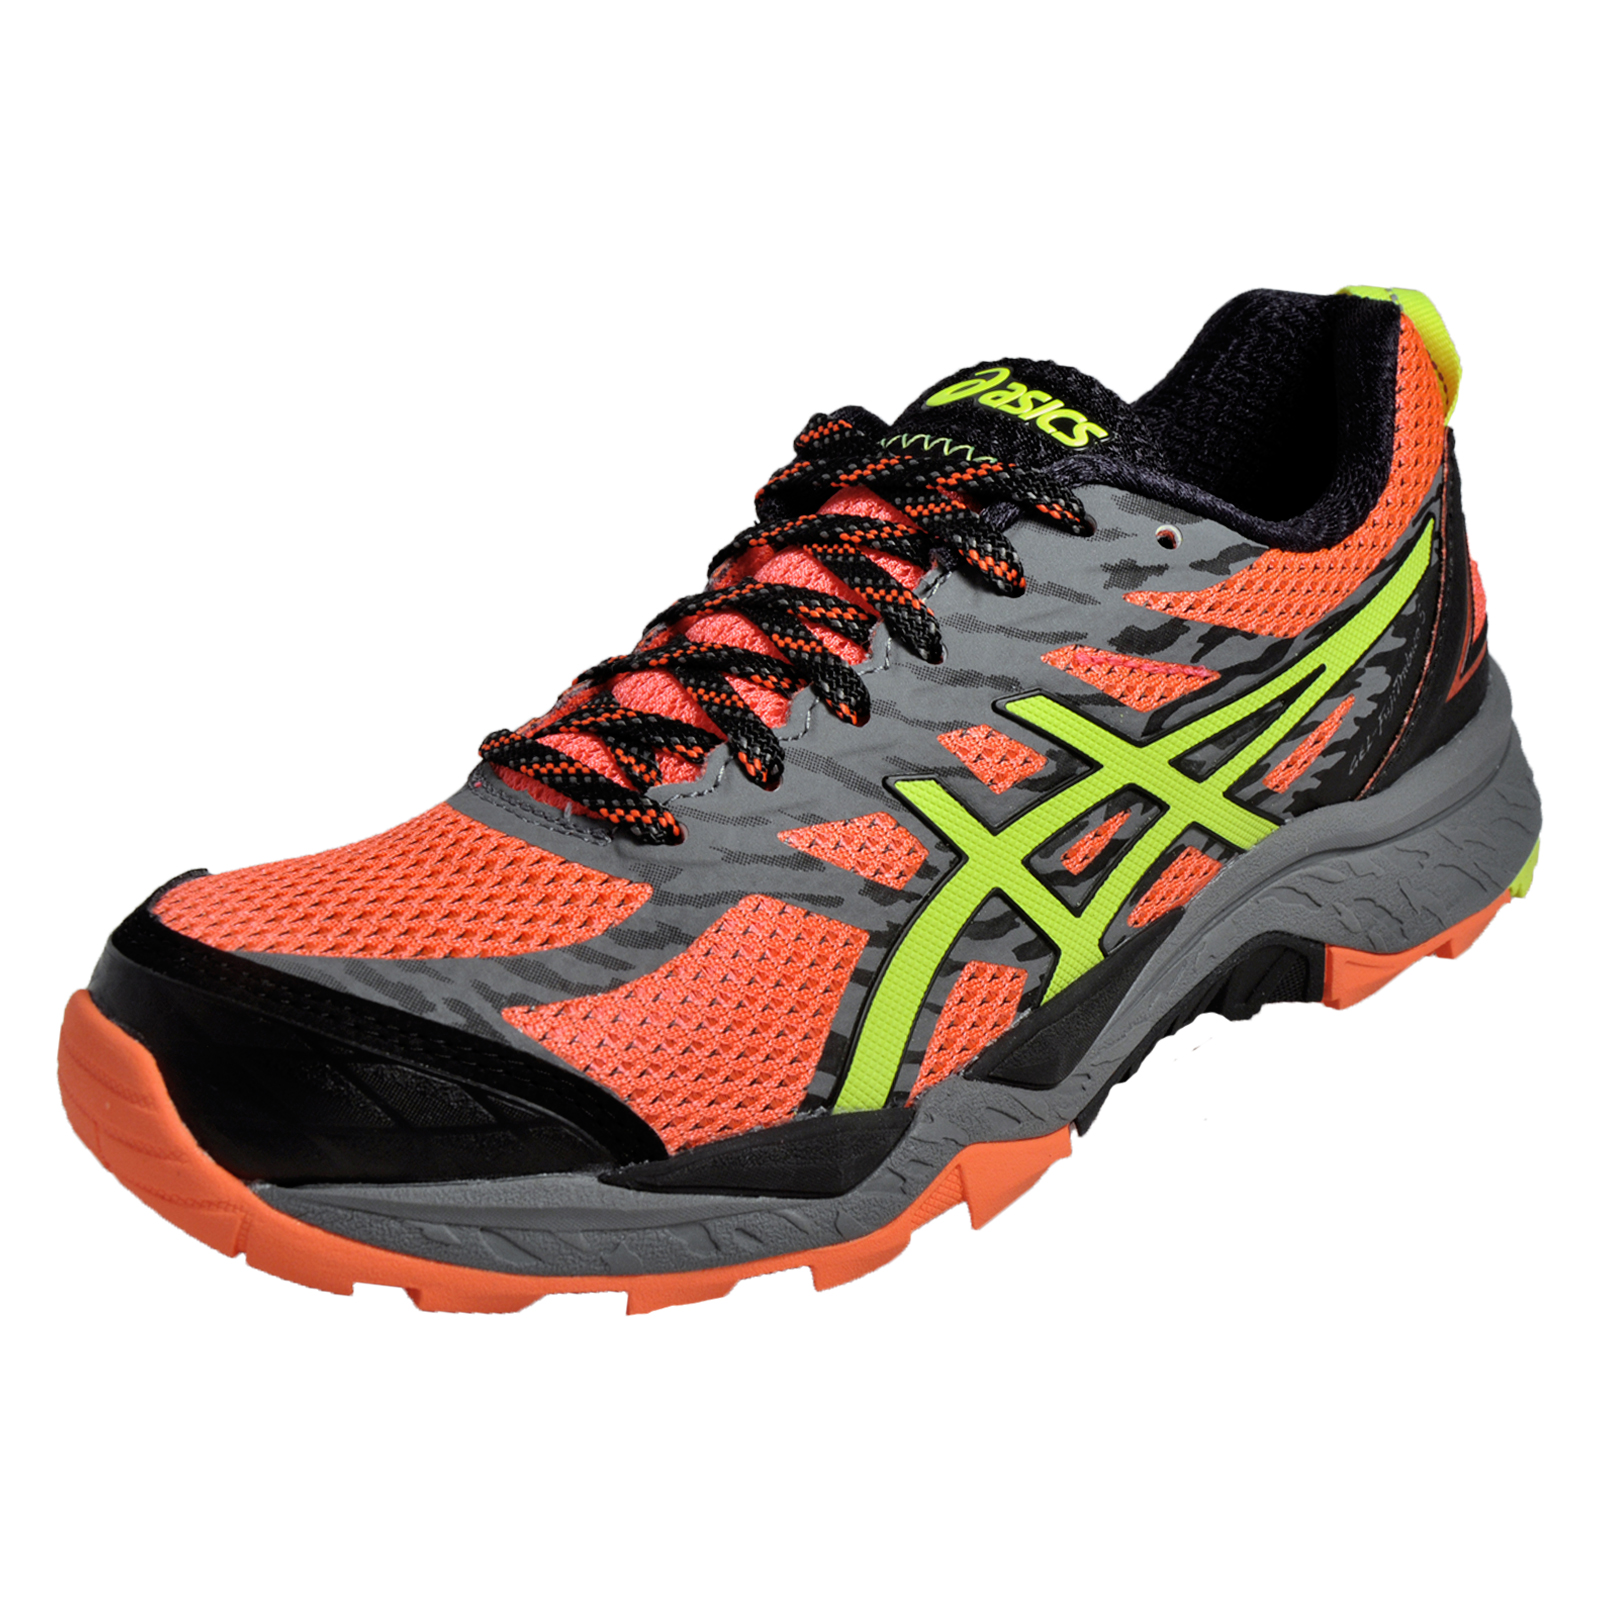 asics gel fuji trabuco 5 womens all terrain trail running shoes flash coral ebay. Black Bedroom Furniture Sets. Home Design Ideas